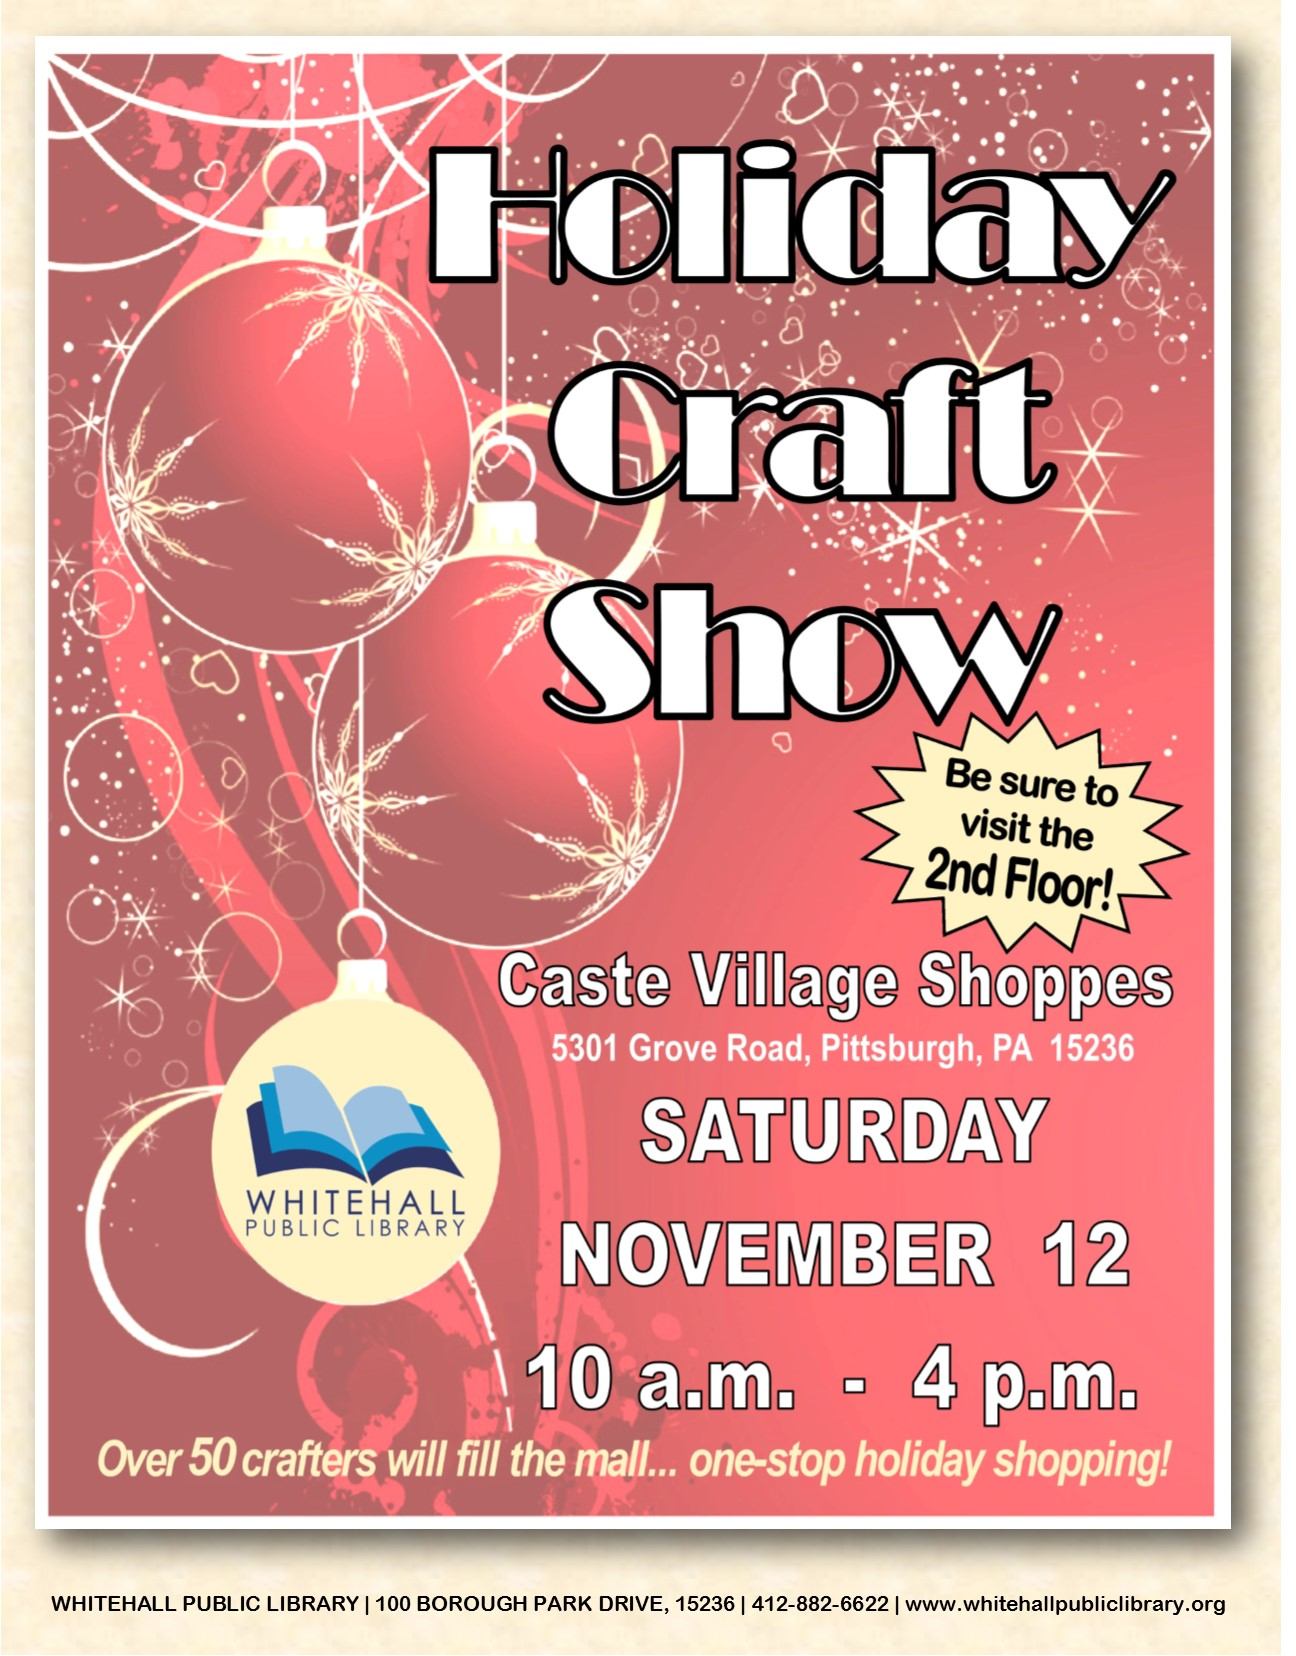 Craft Show In Caste Village  Welcome To The Shoppes At. Auto Insurance Rate Quote Shettles Method Boy. Mini Dental Implants Reviews. Second Home Mortgage Rates 24 Hours Insurance. Psyd Online Apa Accredited Hotel Reward Card. Phone Business Solutions Grondins Hair Center. Applying For Nursing School Toyota Vs Jeep. Hormone Pellets For Women Liferay Portal Demo. Corporate Office Phone Numbers